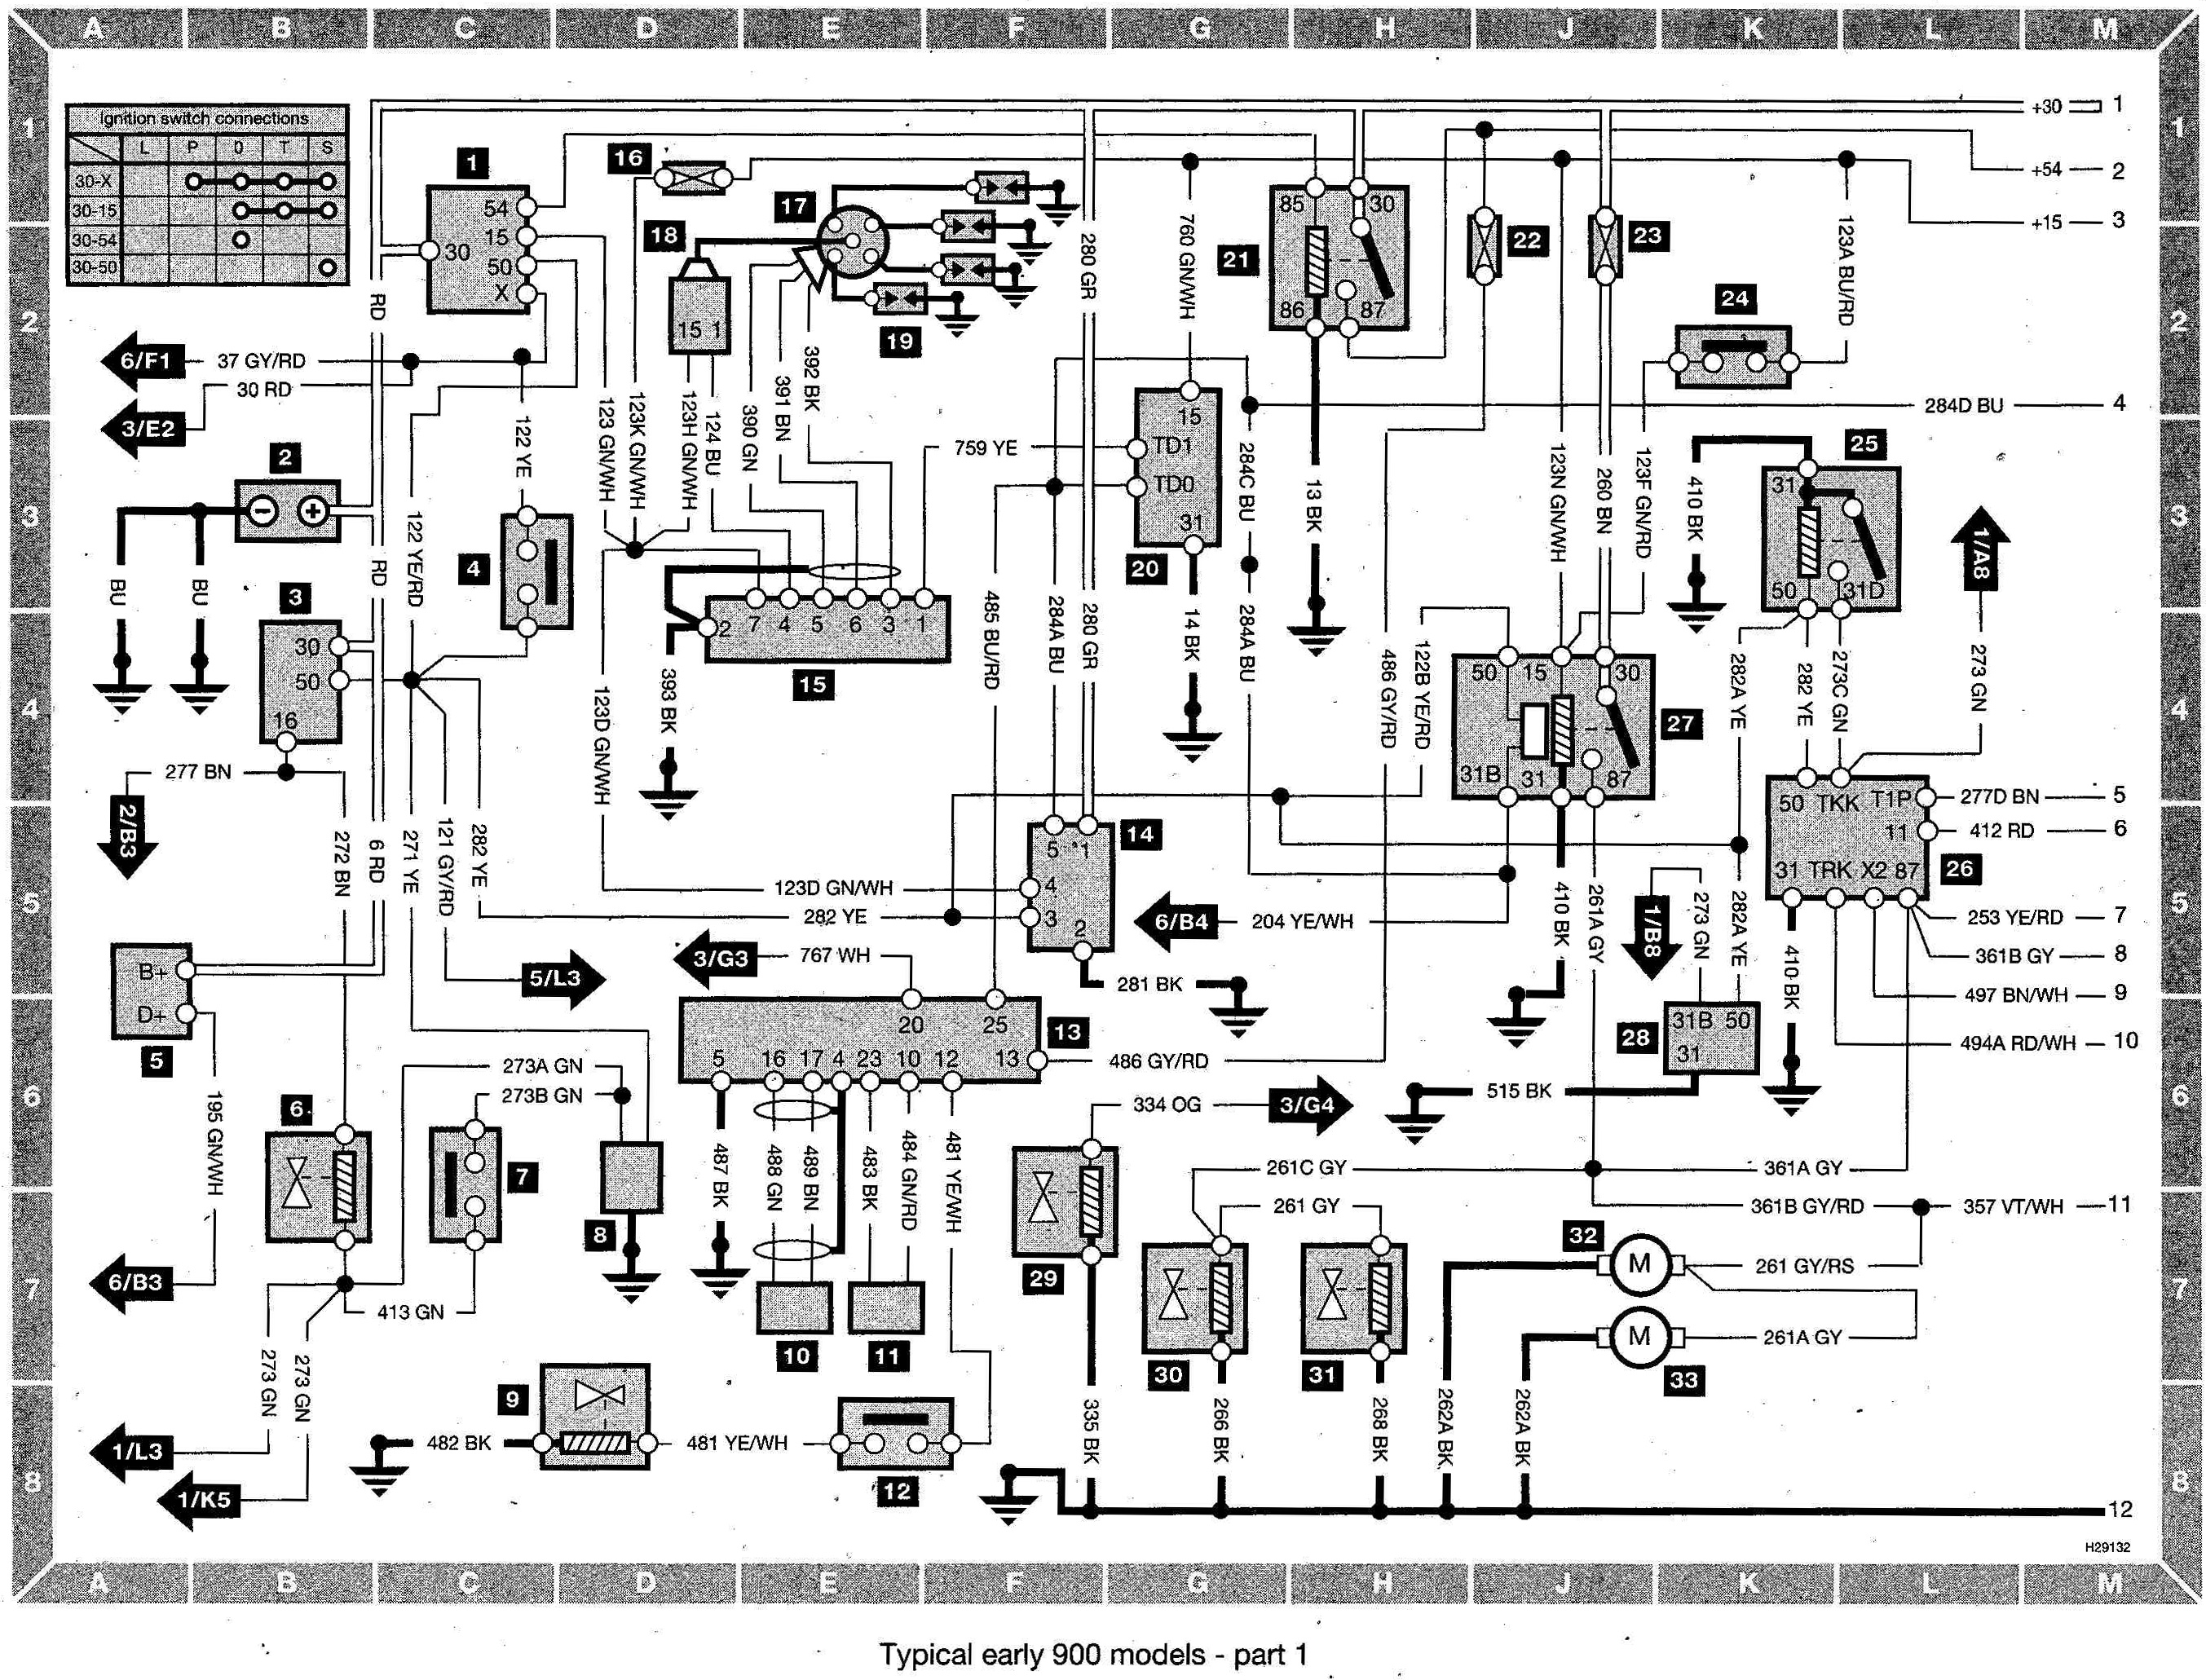 Saab 900 Wiring Diagram Saab Wiring Diagram And Schematics